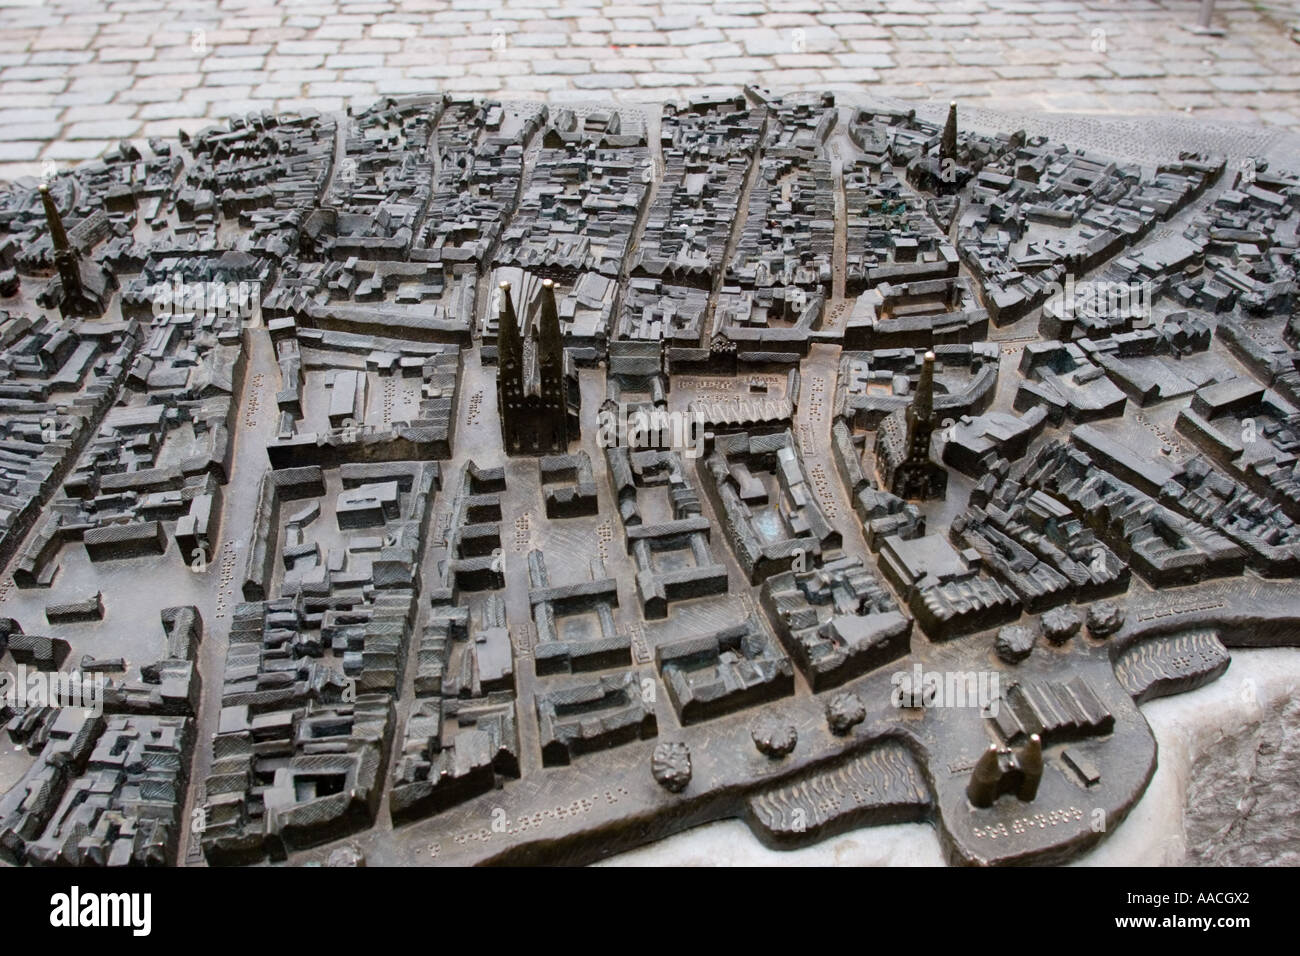 Model of medieval world stock photos model of medieval for Mobel lubeck